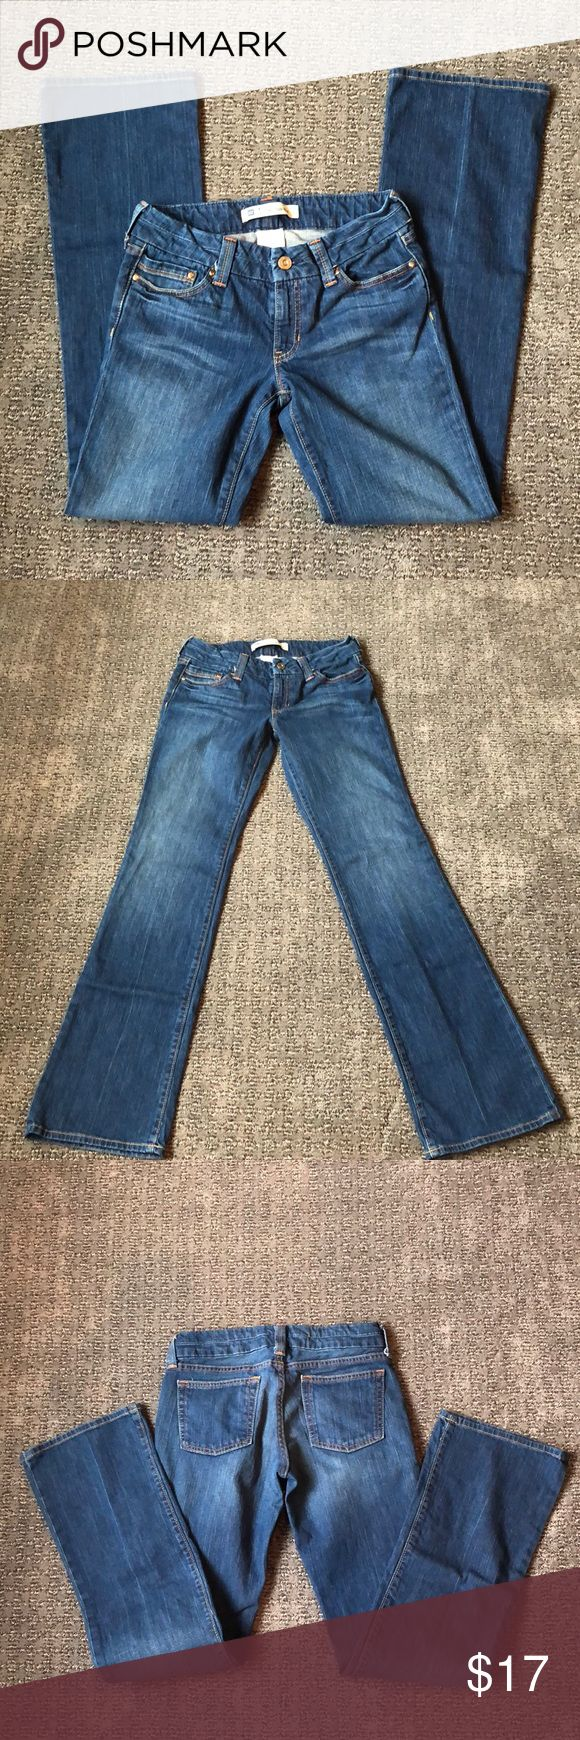 """Gap straight ultra low rise jeans Inseam is 34"""". The size is 8 tall. No rips, tears or stains. Barely worn. 99% cotton, 1% spandex. GAP Jeans Straight Leg"""